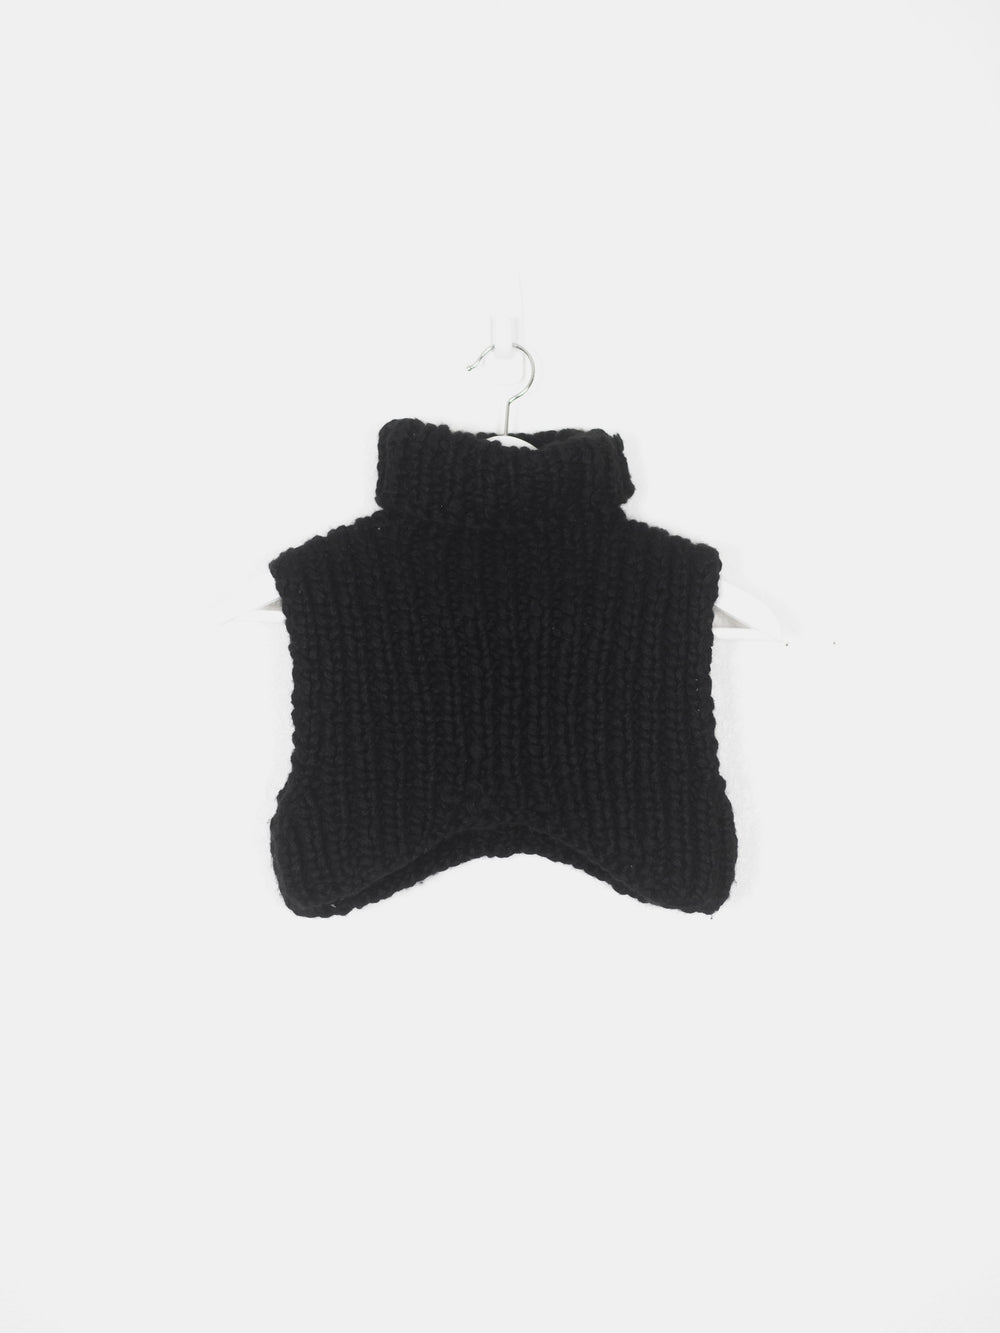 Helmut Lang AW02 Wool Knit Crop Top